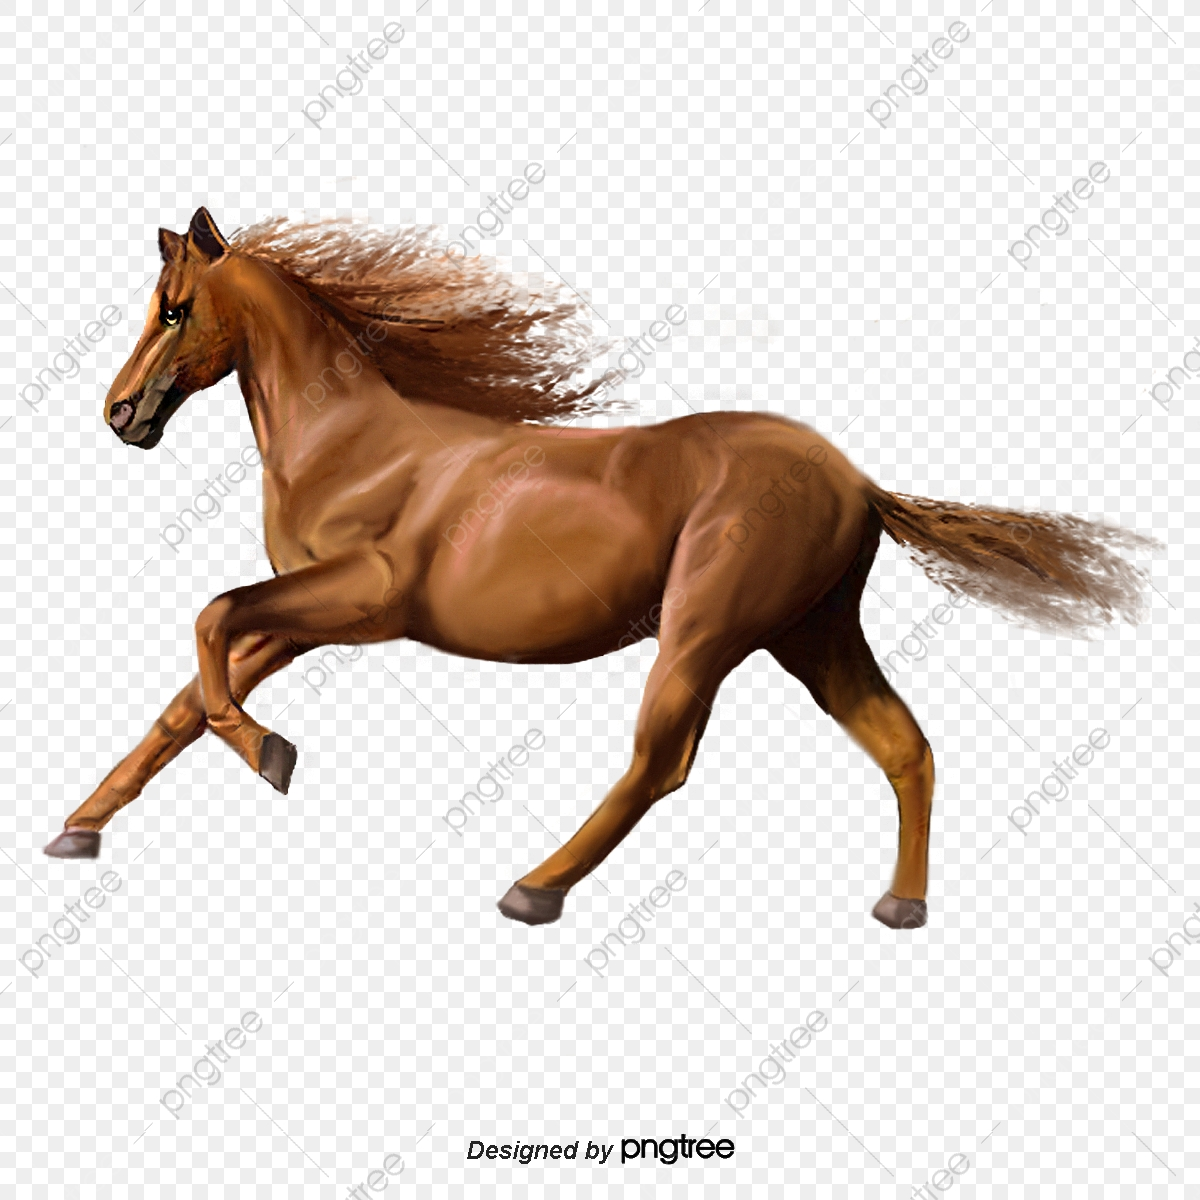 Horses Running Png Vector Psd And Clipart With Transparent Background For Free Download Pngtree